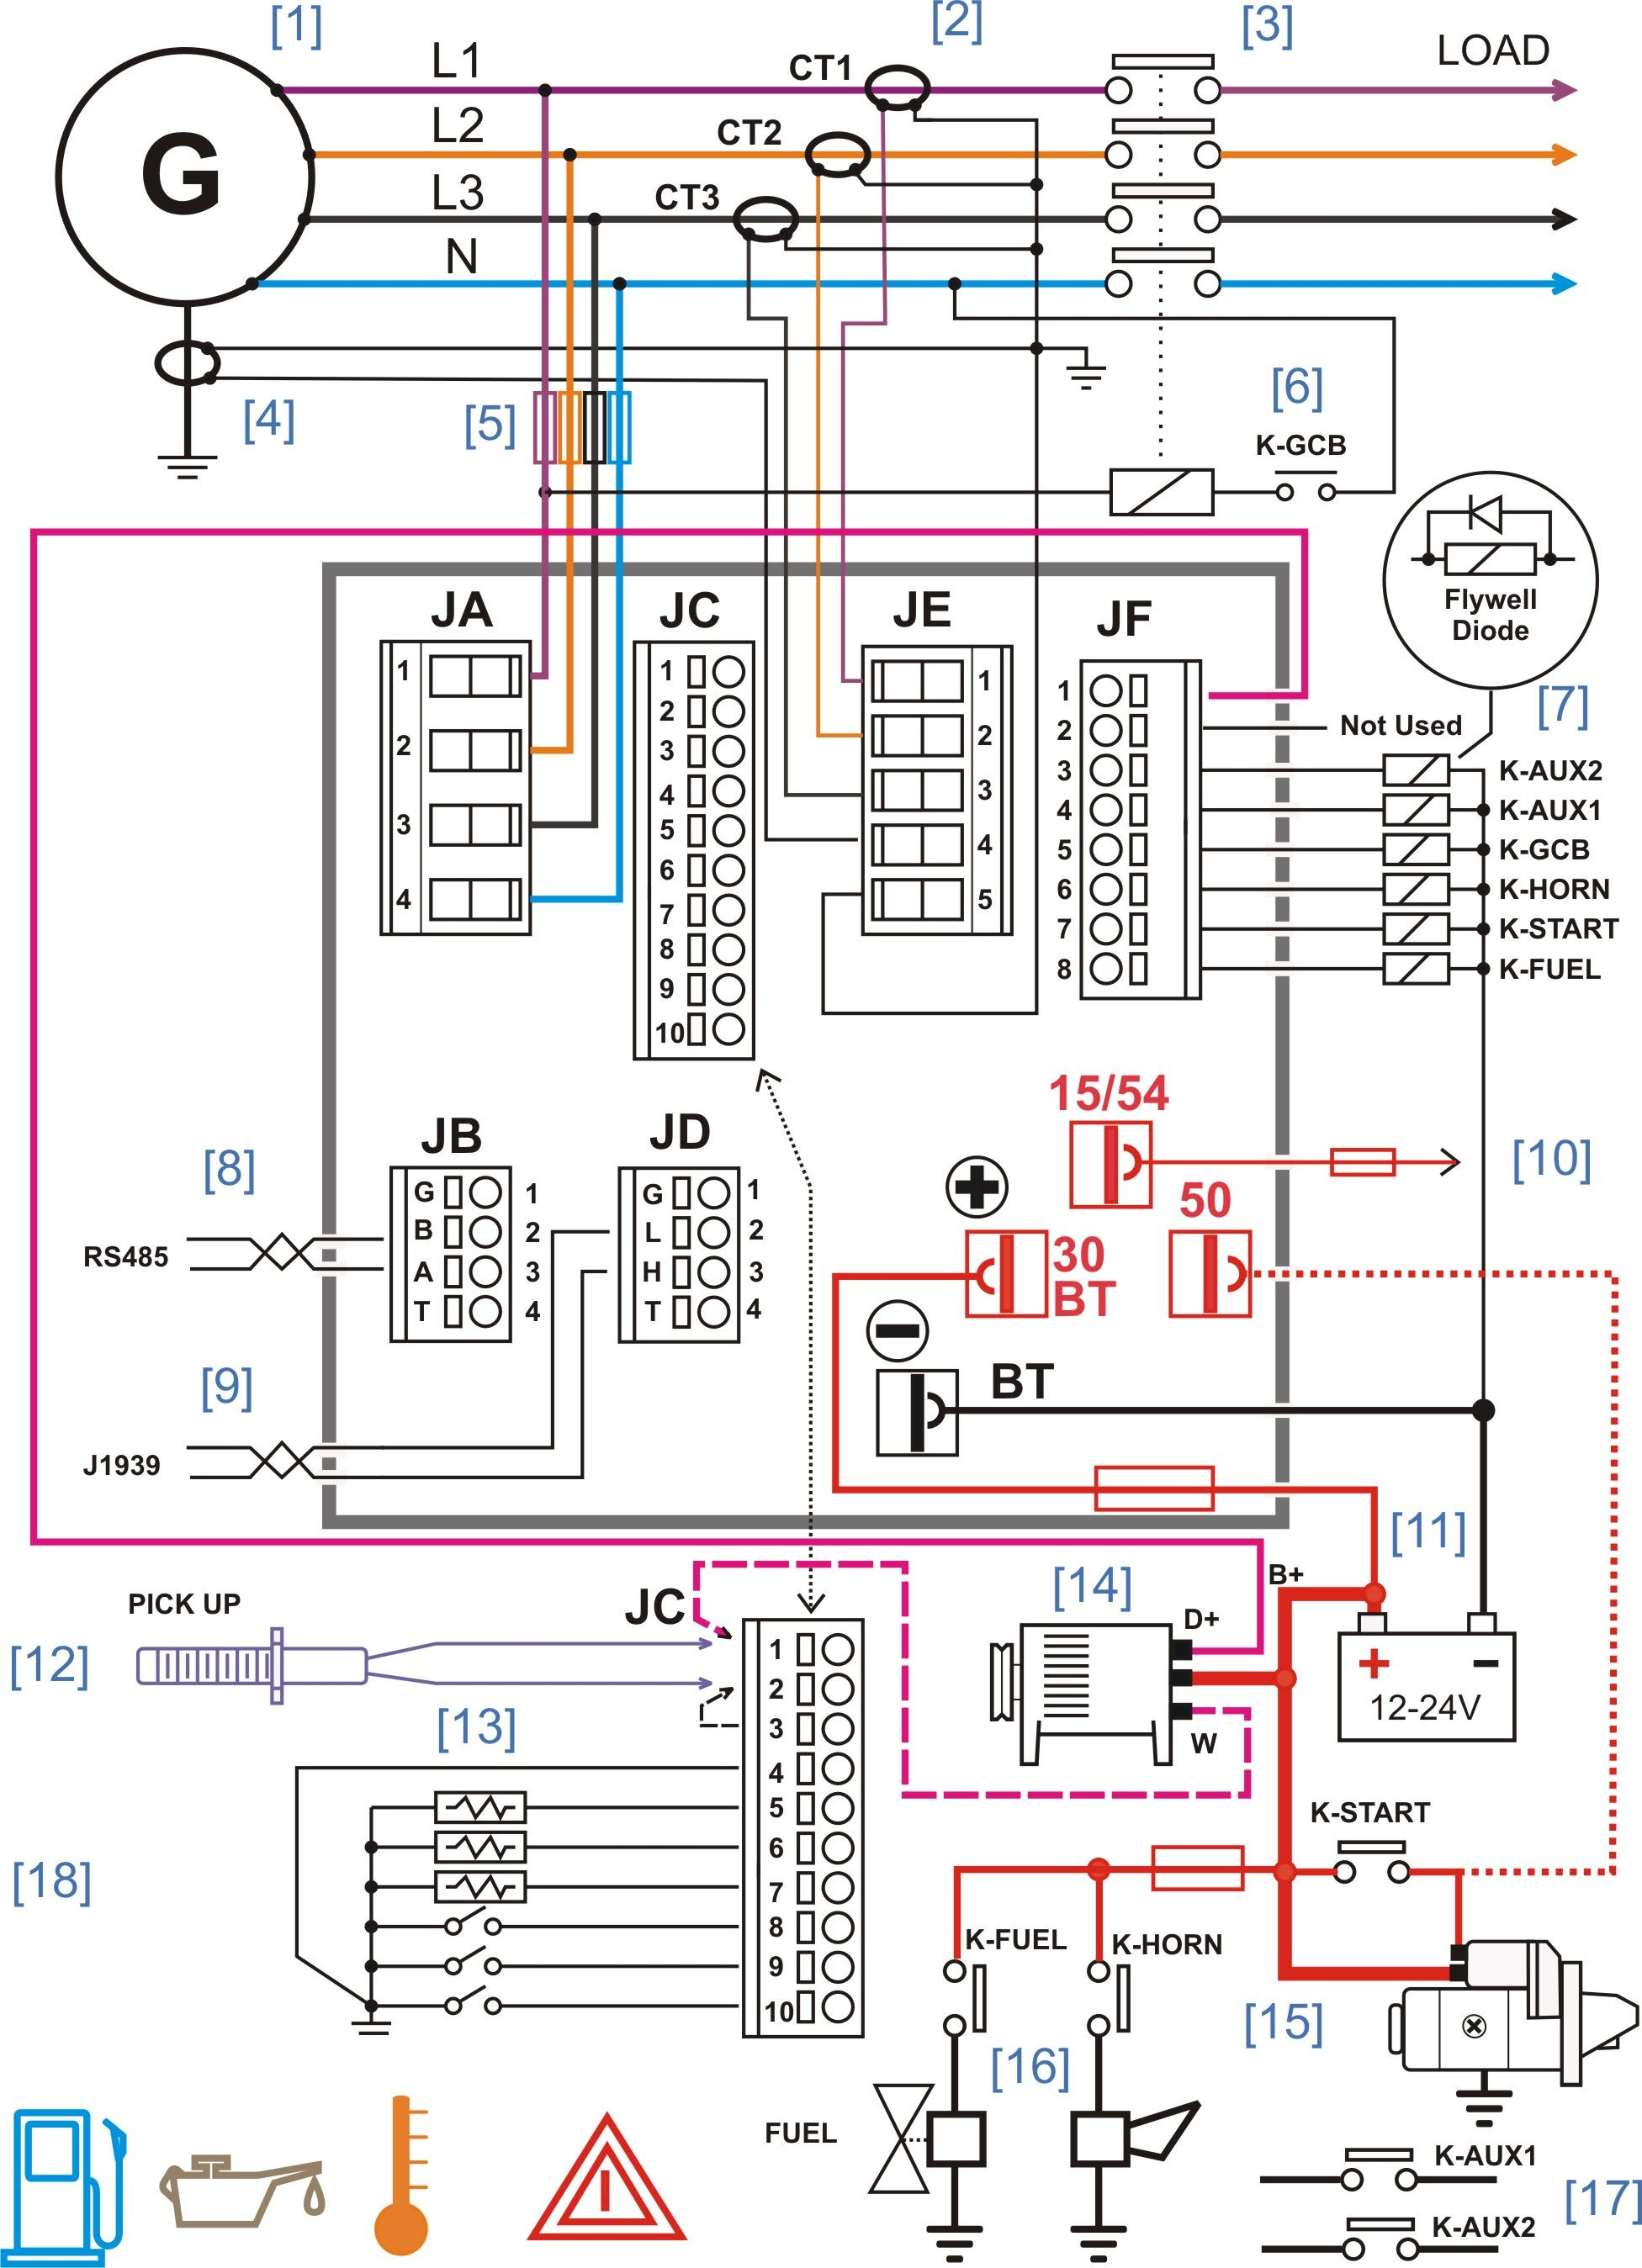 Ac Control Wiring - Wiring Diagram M10 on